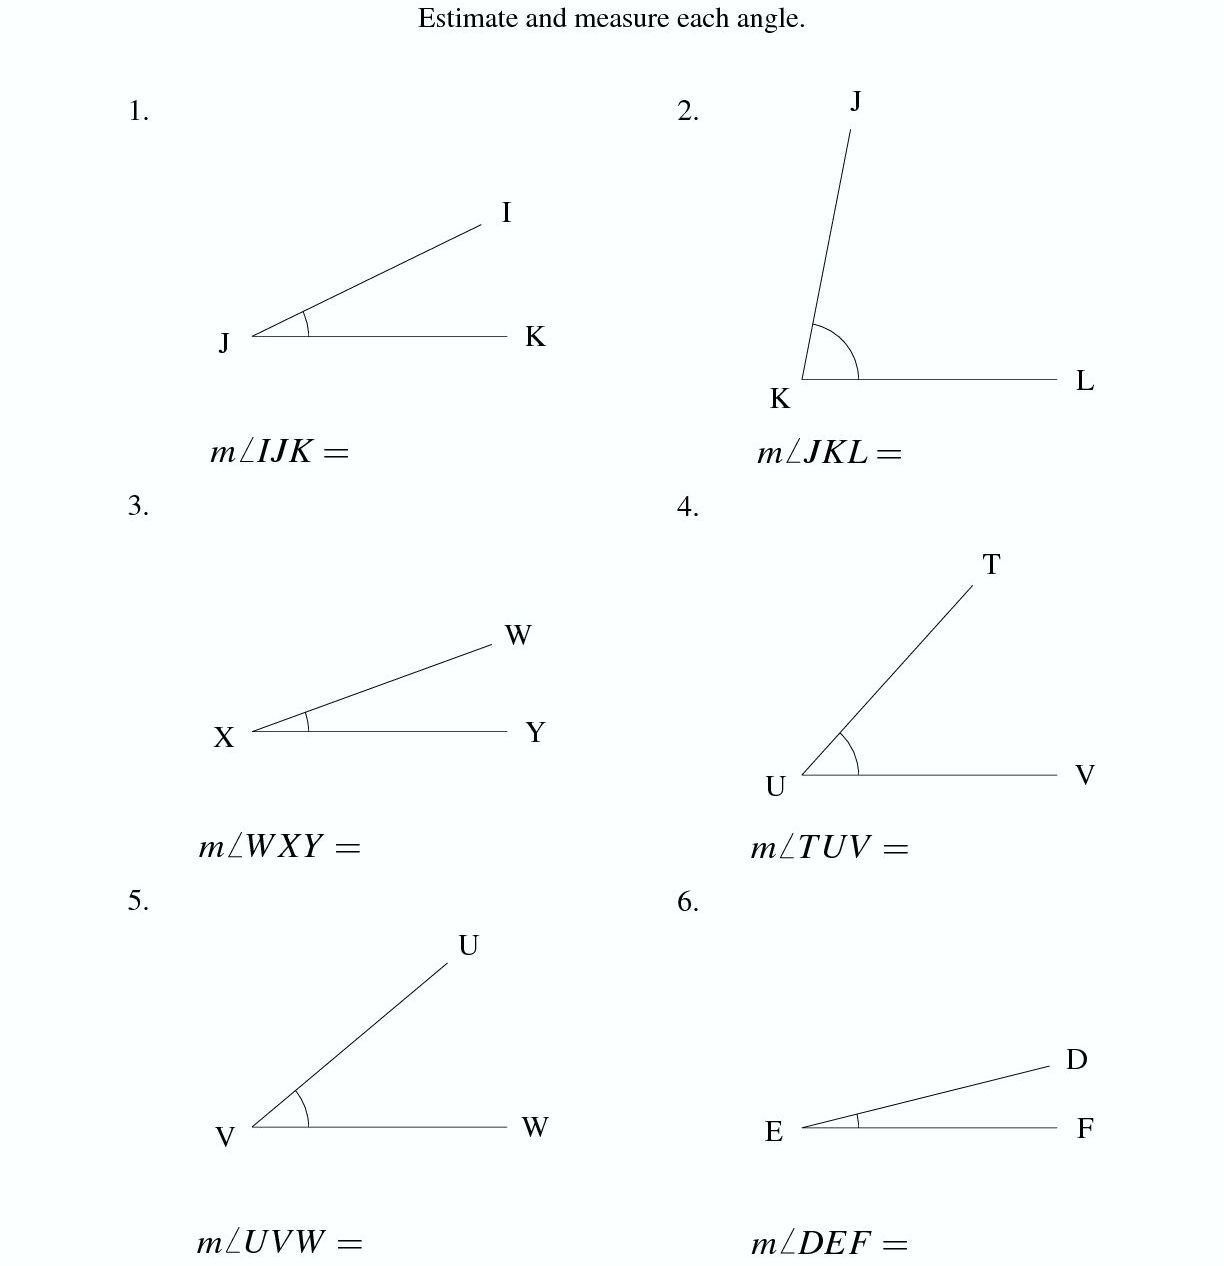 Measuring Angles With A Protractor Worksheet Inside Measuring Angles With A Protractor Worksheet